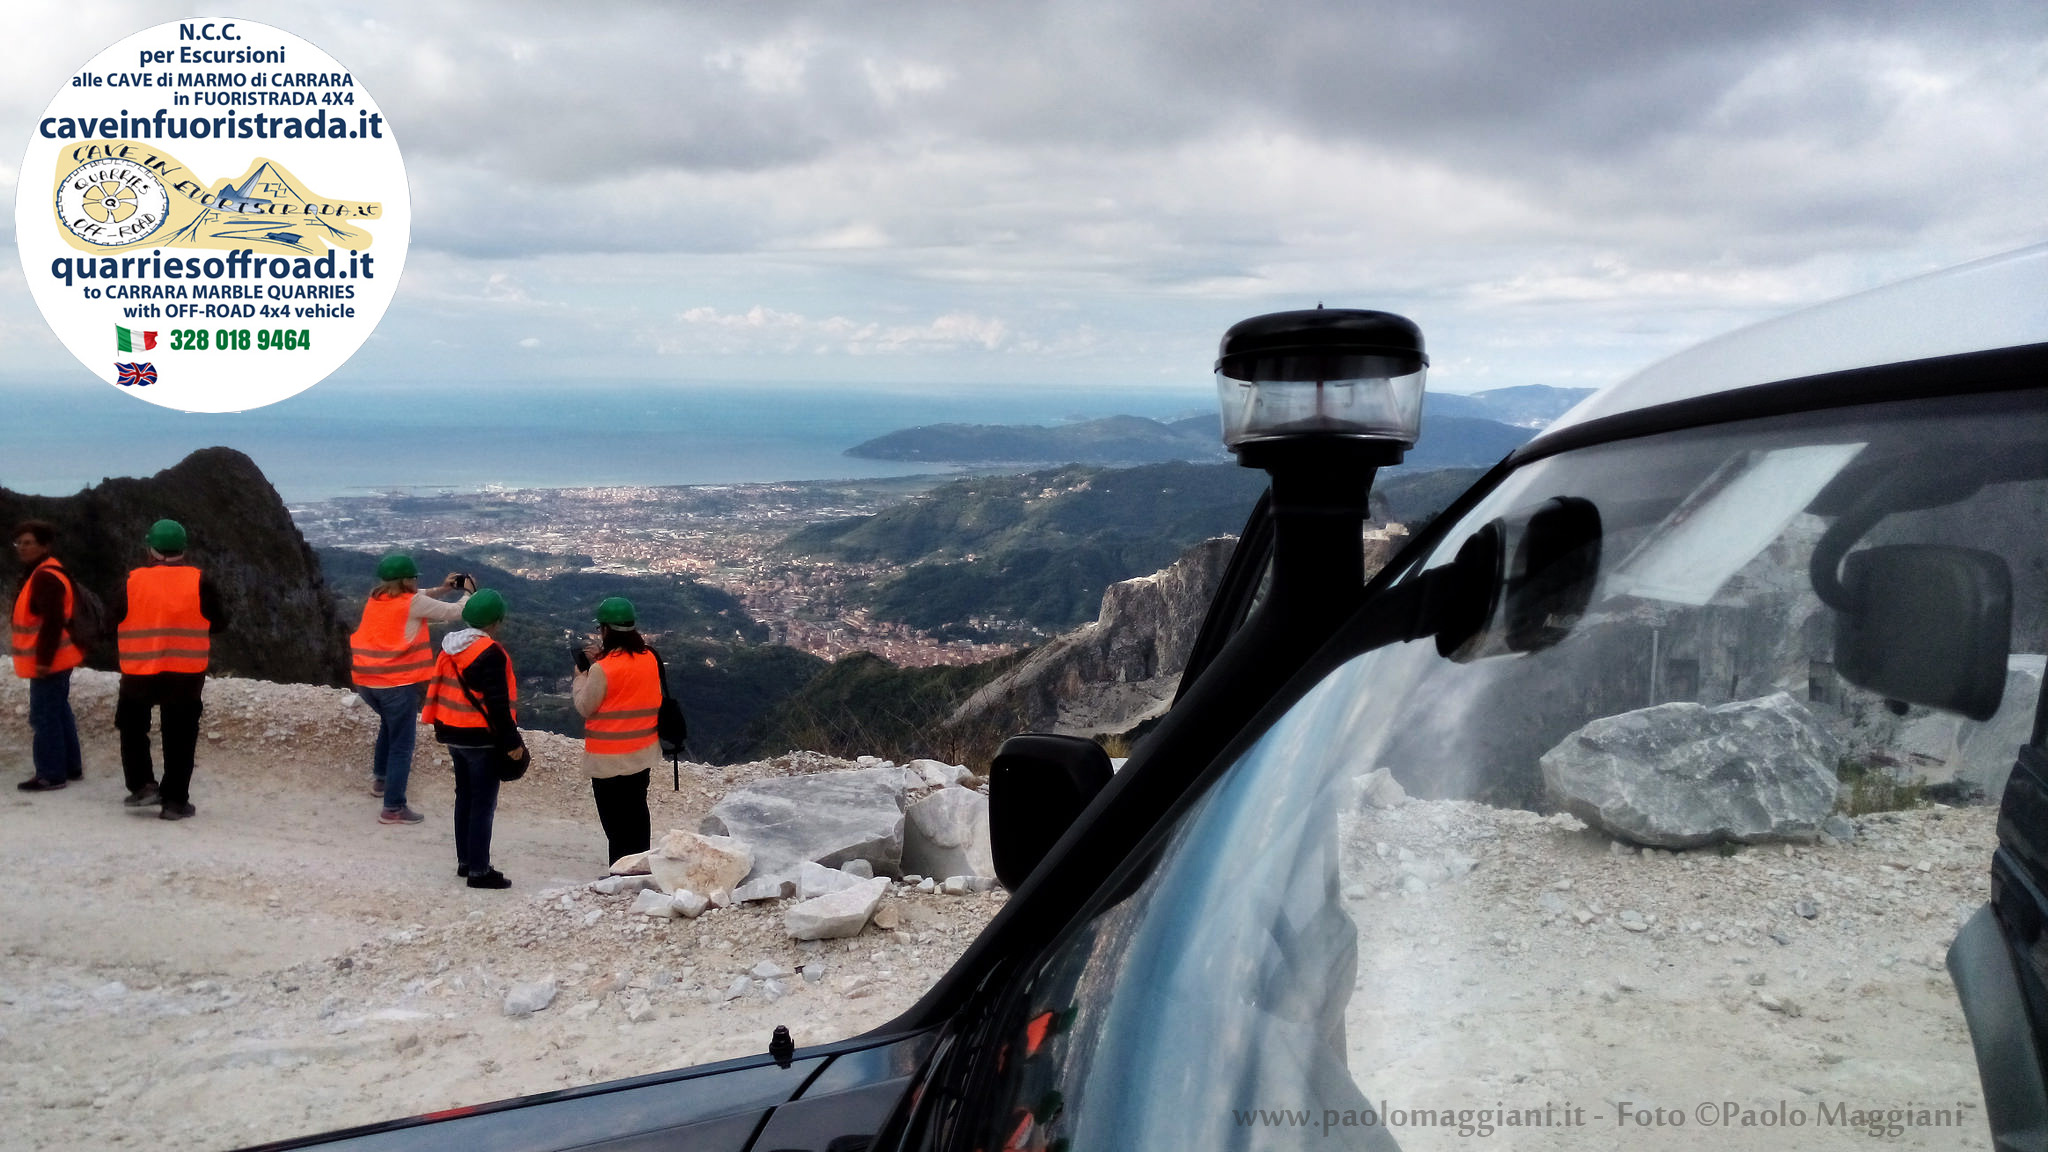 Carrara marble tour 4×4